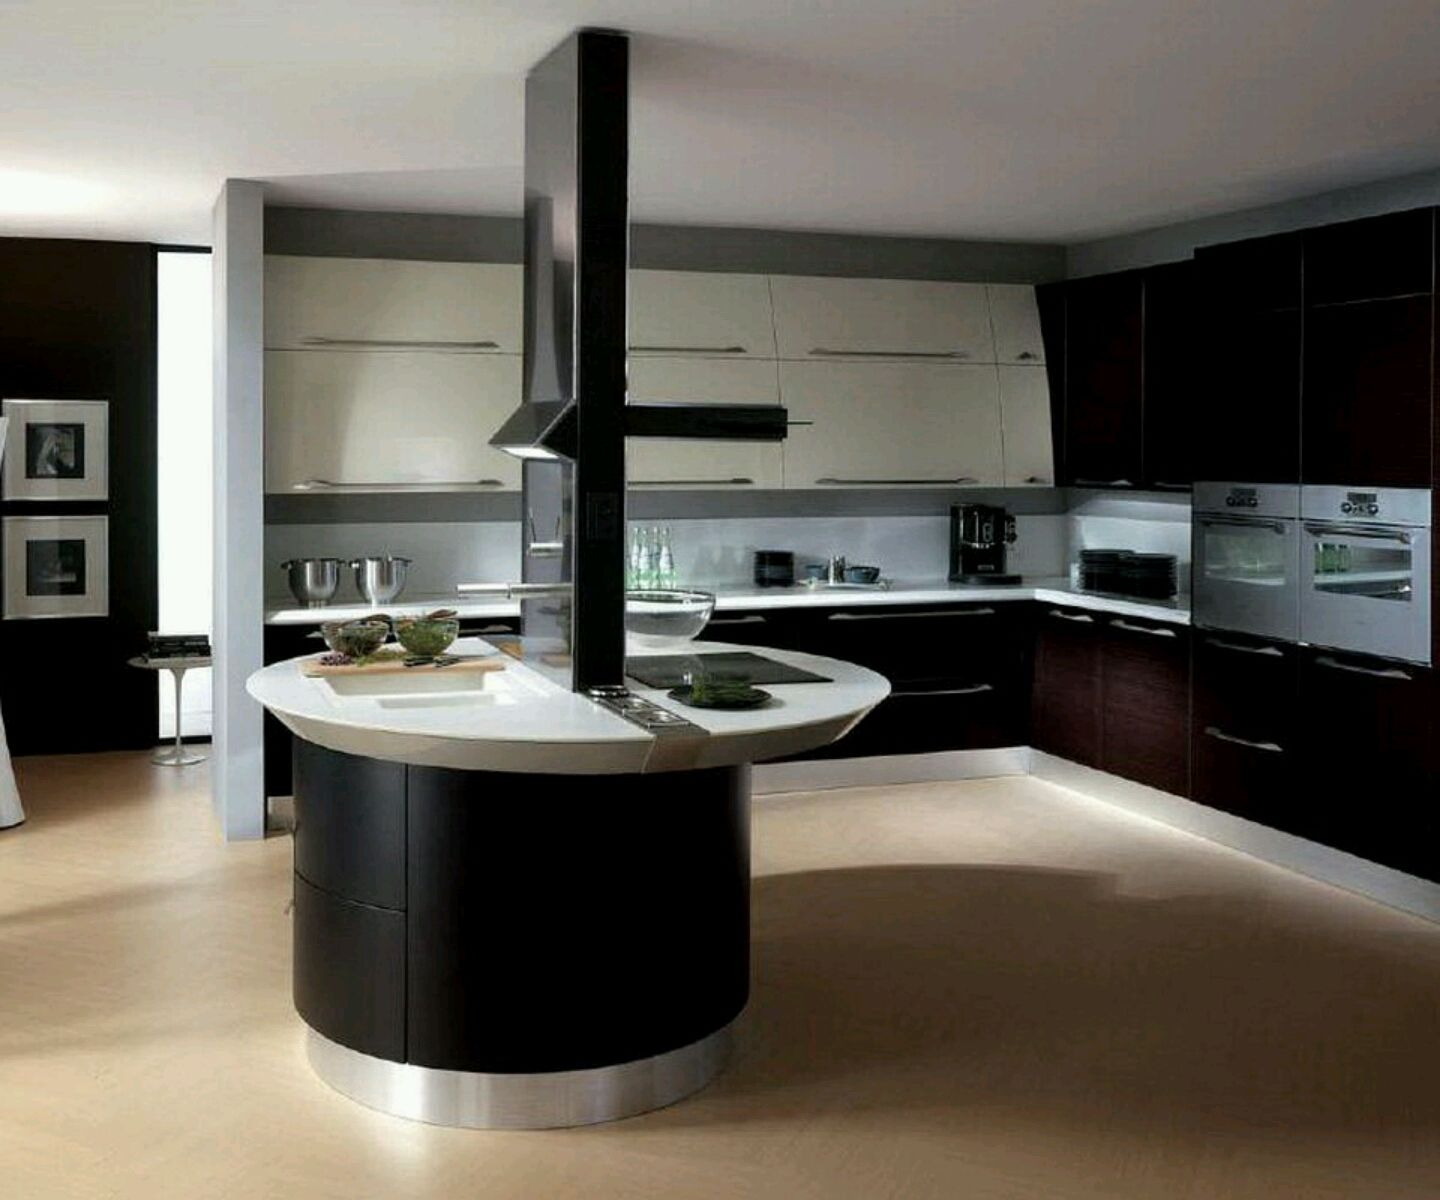 Luxury Modern Kitchen Designs Decoration Delectable Smart Kitchen Islands  Buscar Con Google  Arquitectura Y . Design Decoration